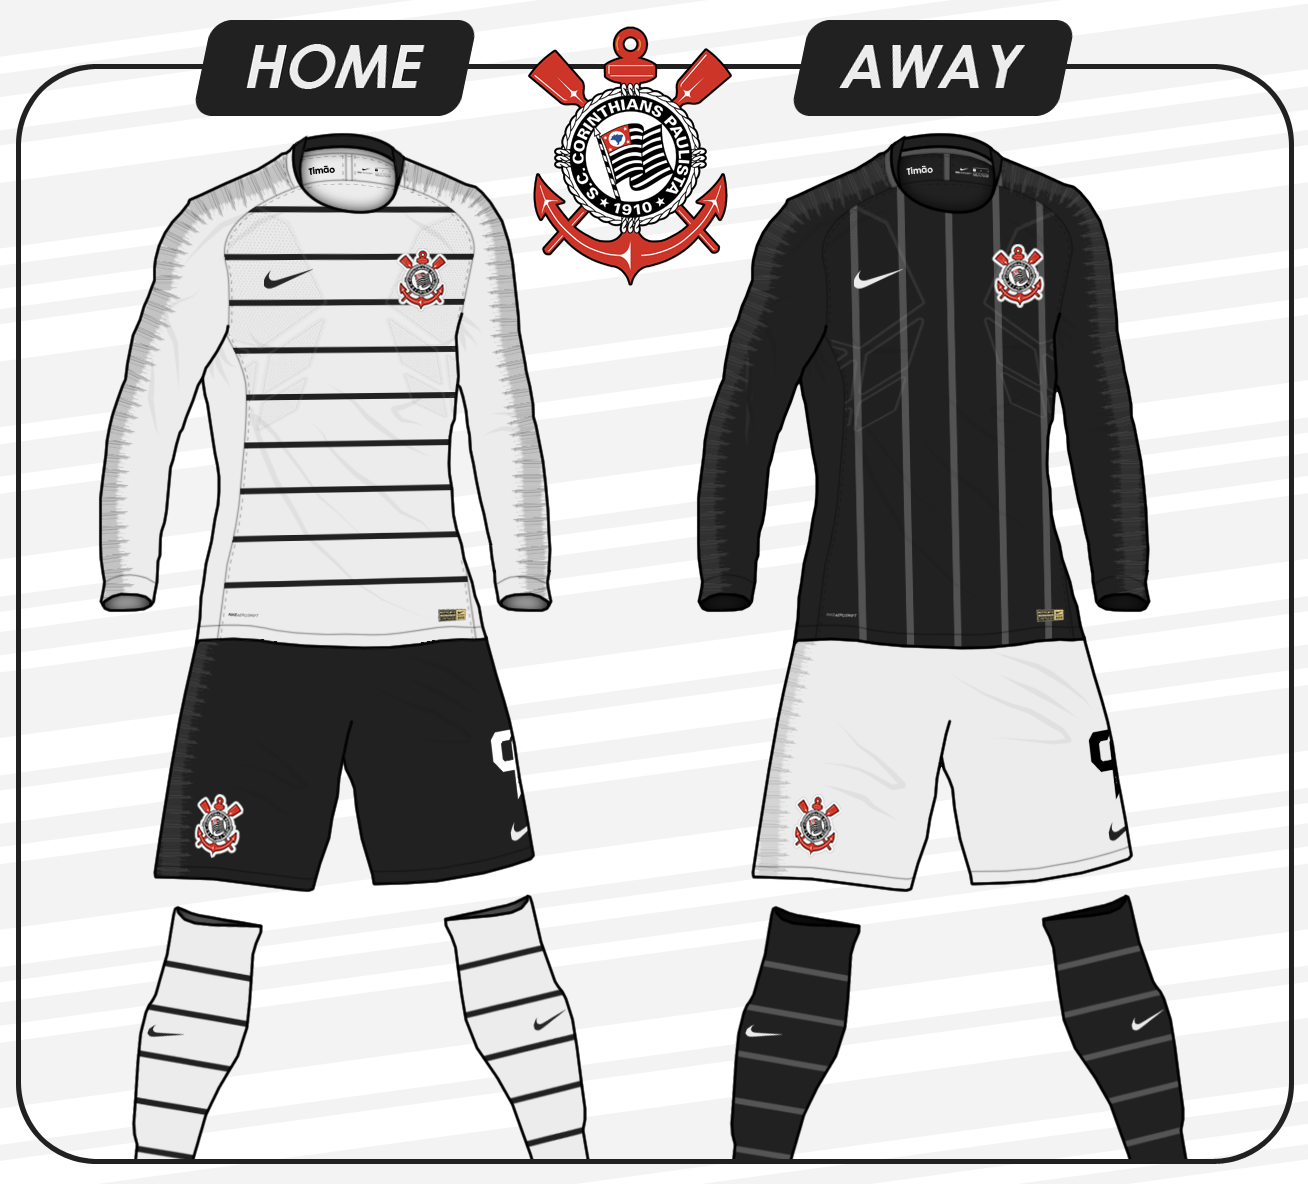 Corinthians 2018 19 Fantasy Home and Away Kits (based on Nike s newest  template) 09e2c2358922a